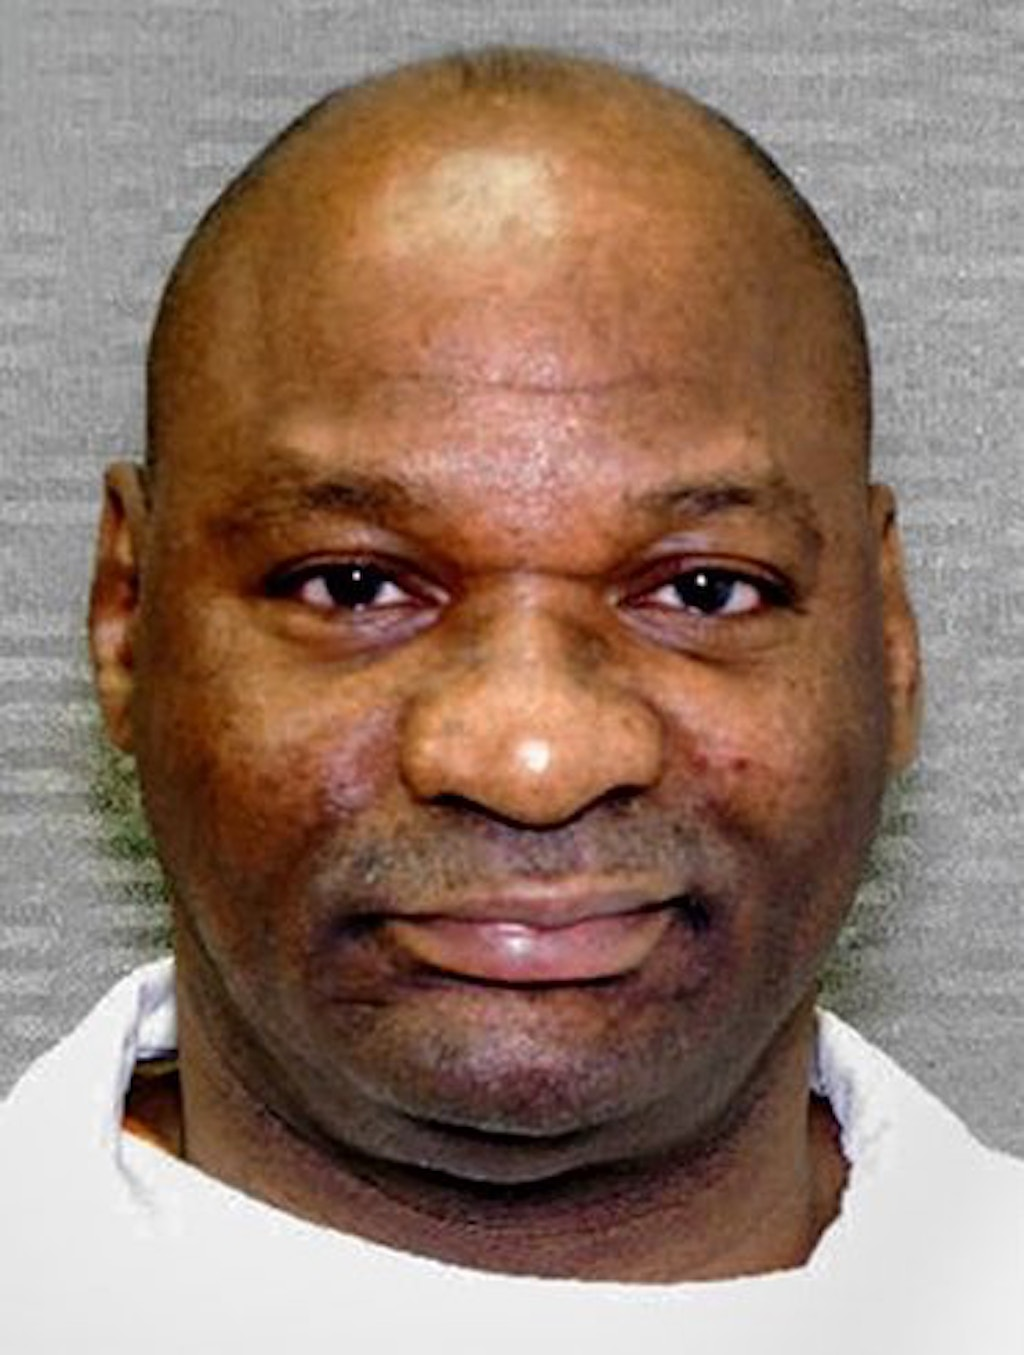 Texas Legislators Ask Why Intellectually Disabled Bobby James Moore is Still on Death Row